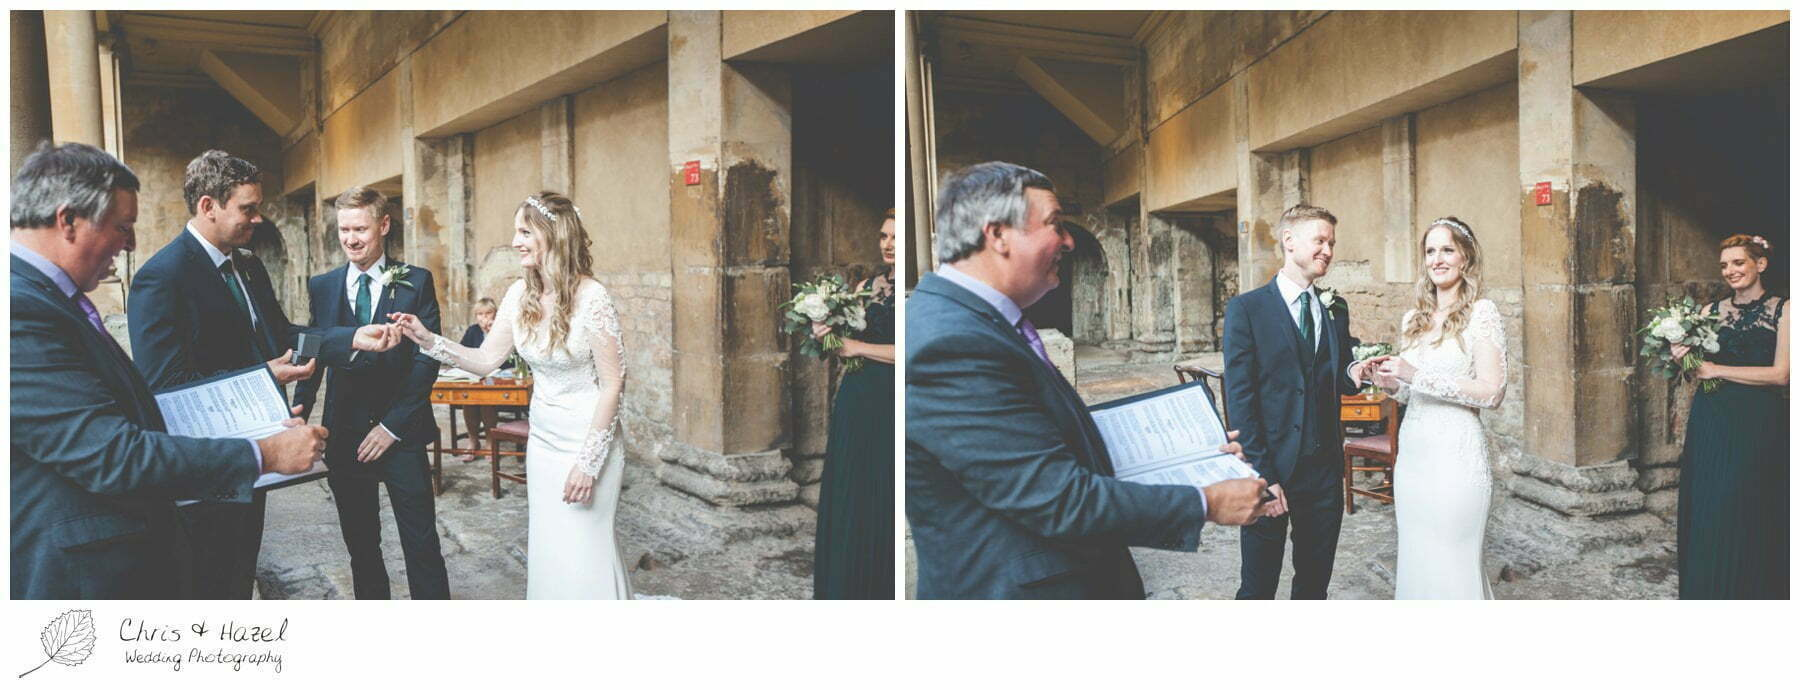 Bride and Groom Wedding Ceremony at Roman Baths Pump Rooms, The Roman Baths Wedding Photography, Roman Baths Wedding Photographer, Wedding in Bath, Bath Wedding Day, documentary wedding photography, Chris and Hazel Wedding Photography Bath, Andy Frost Sian Upson